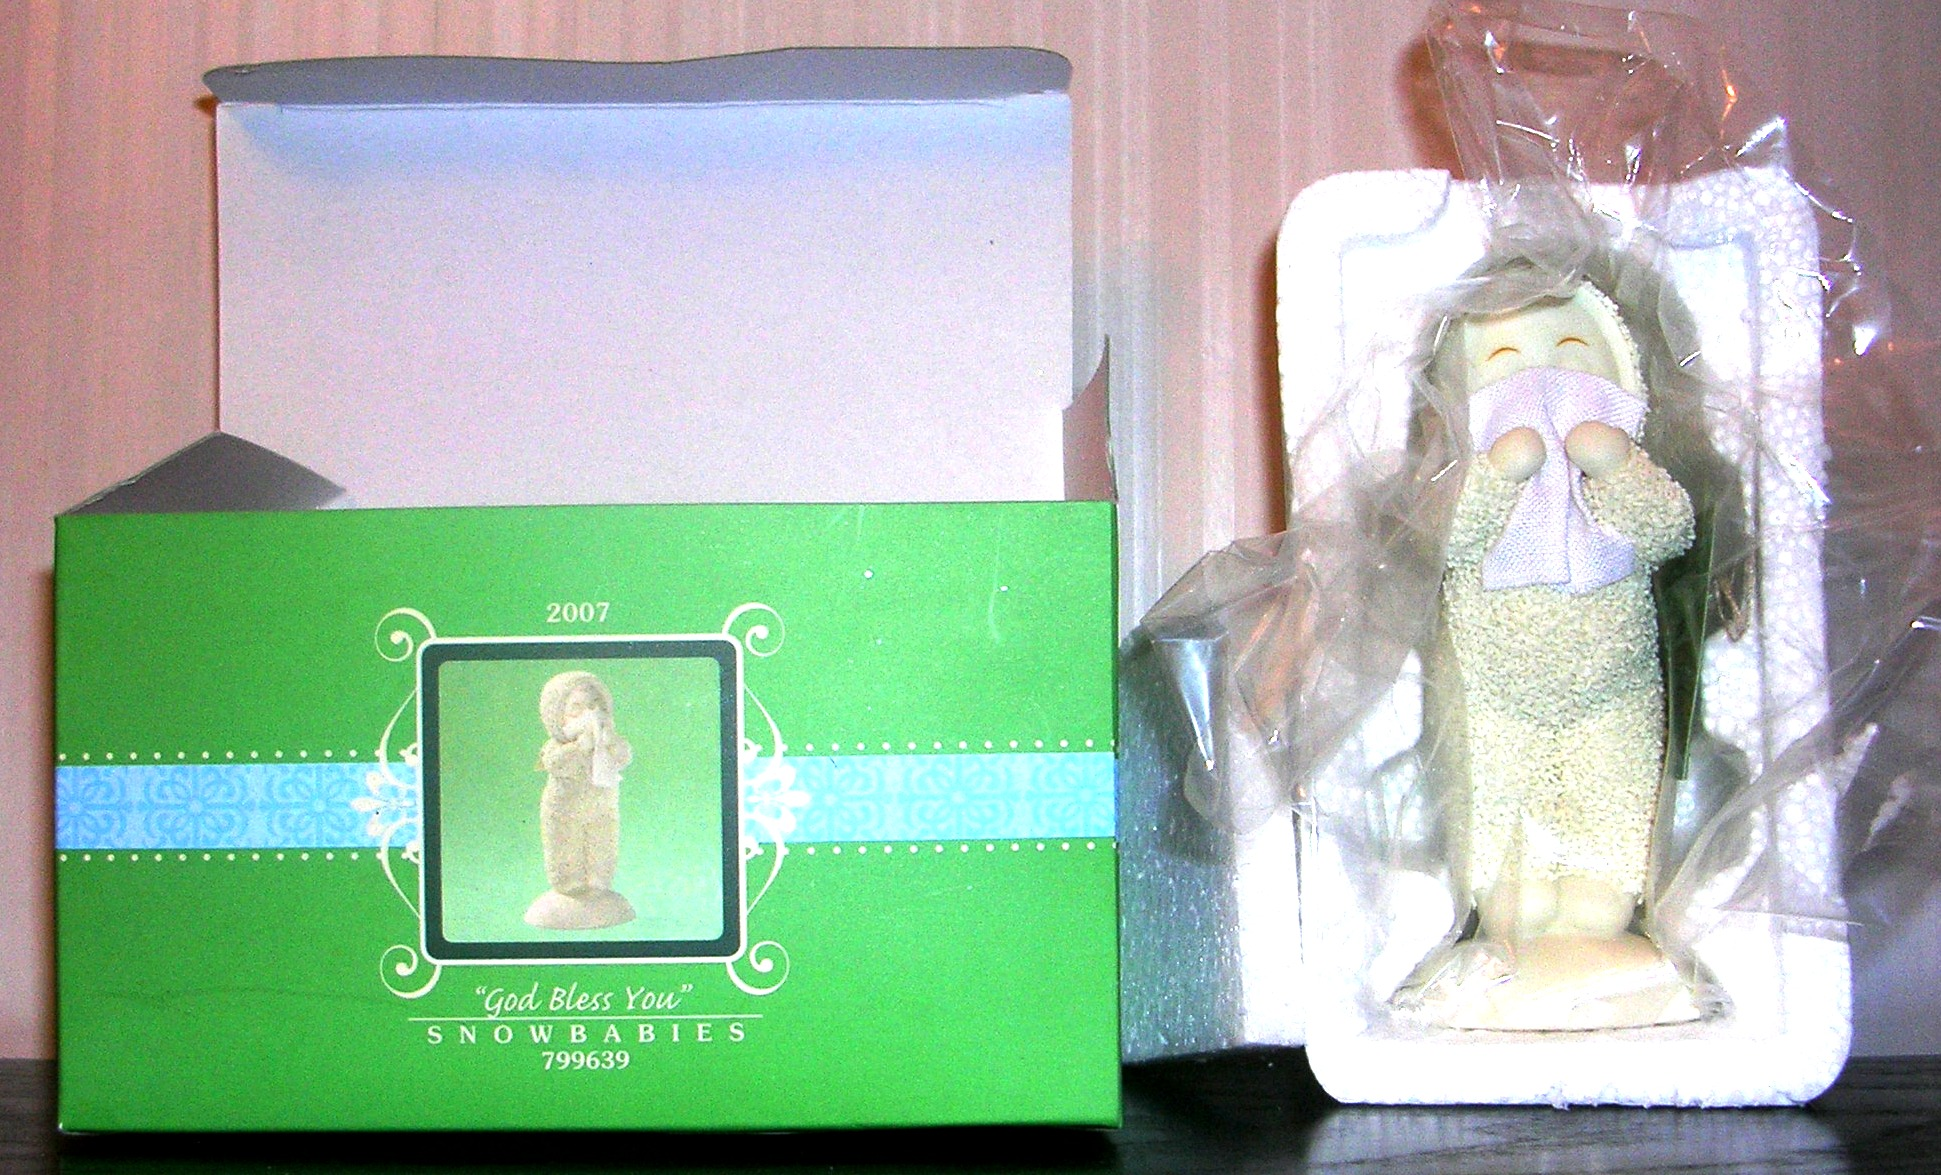 Snowbabies Dept 56 God Bless You 2007 799639